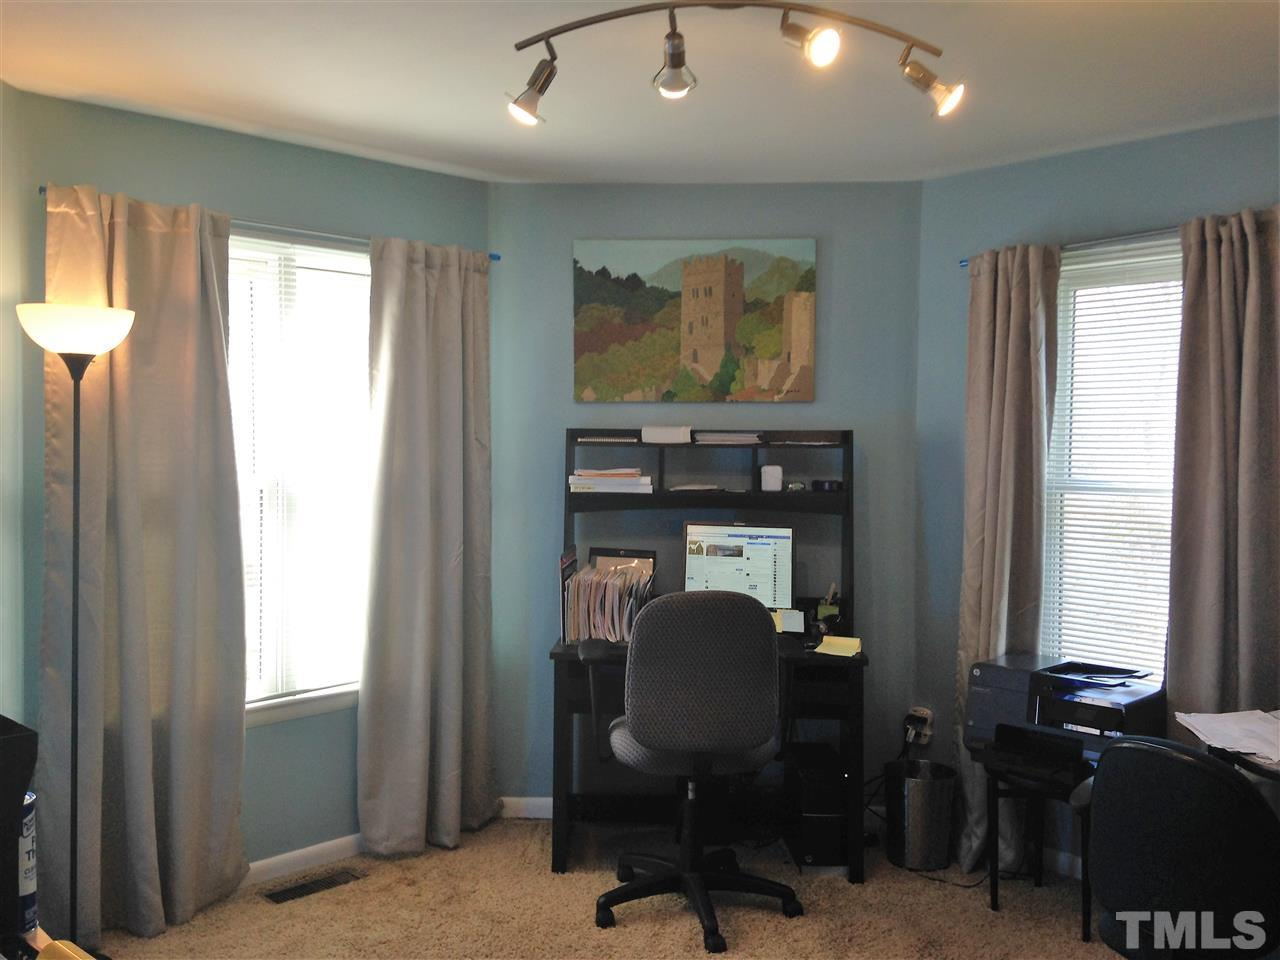 This 2nd floor bedroom (labeled the mancave) has it's own full bath and large closet. It has a recessed area that could be used for a desk or in this case, it has a bed tucked into it.